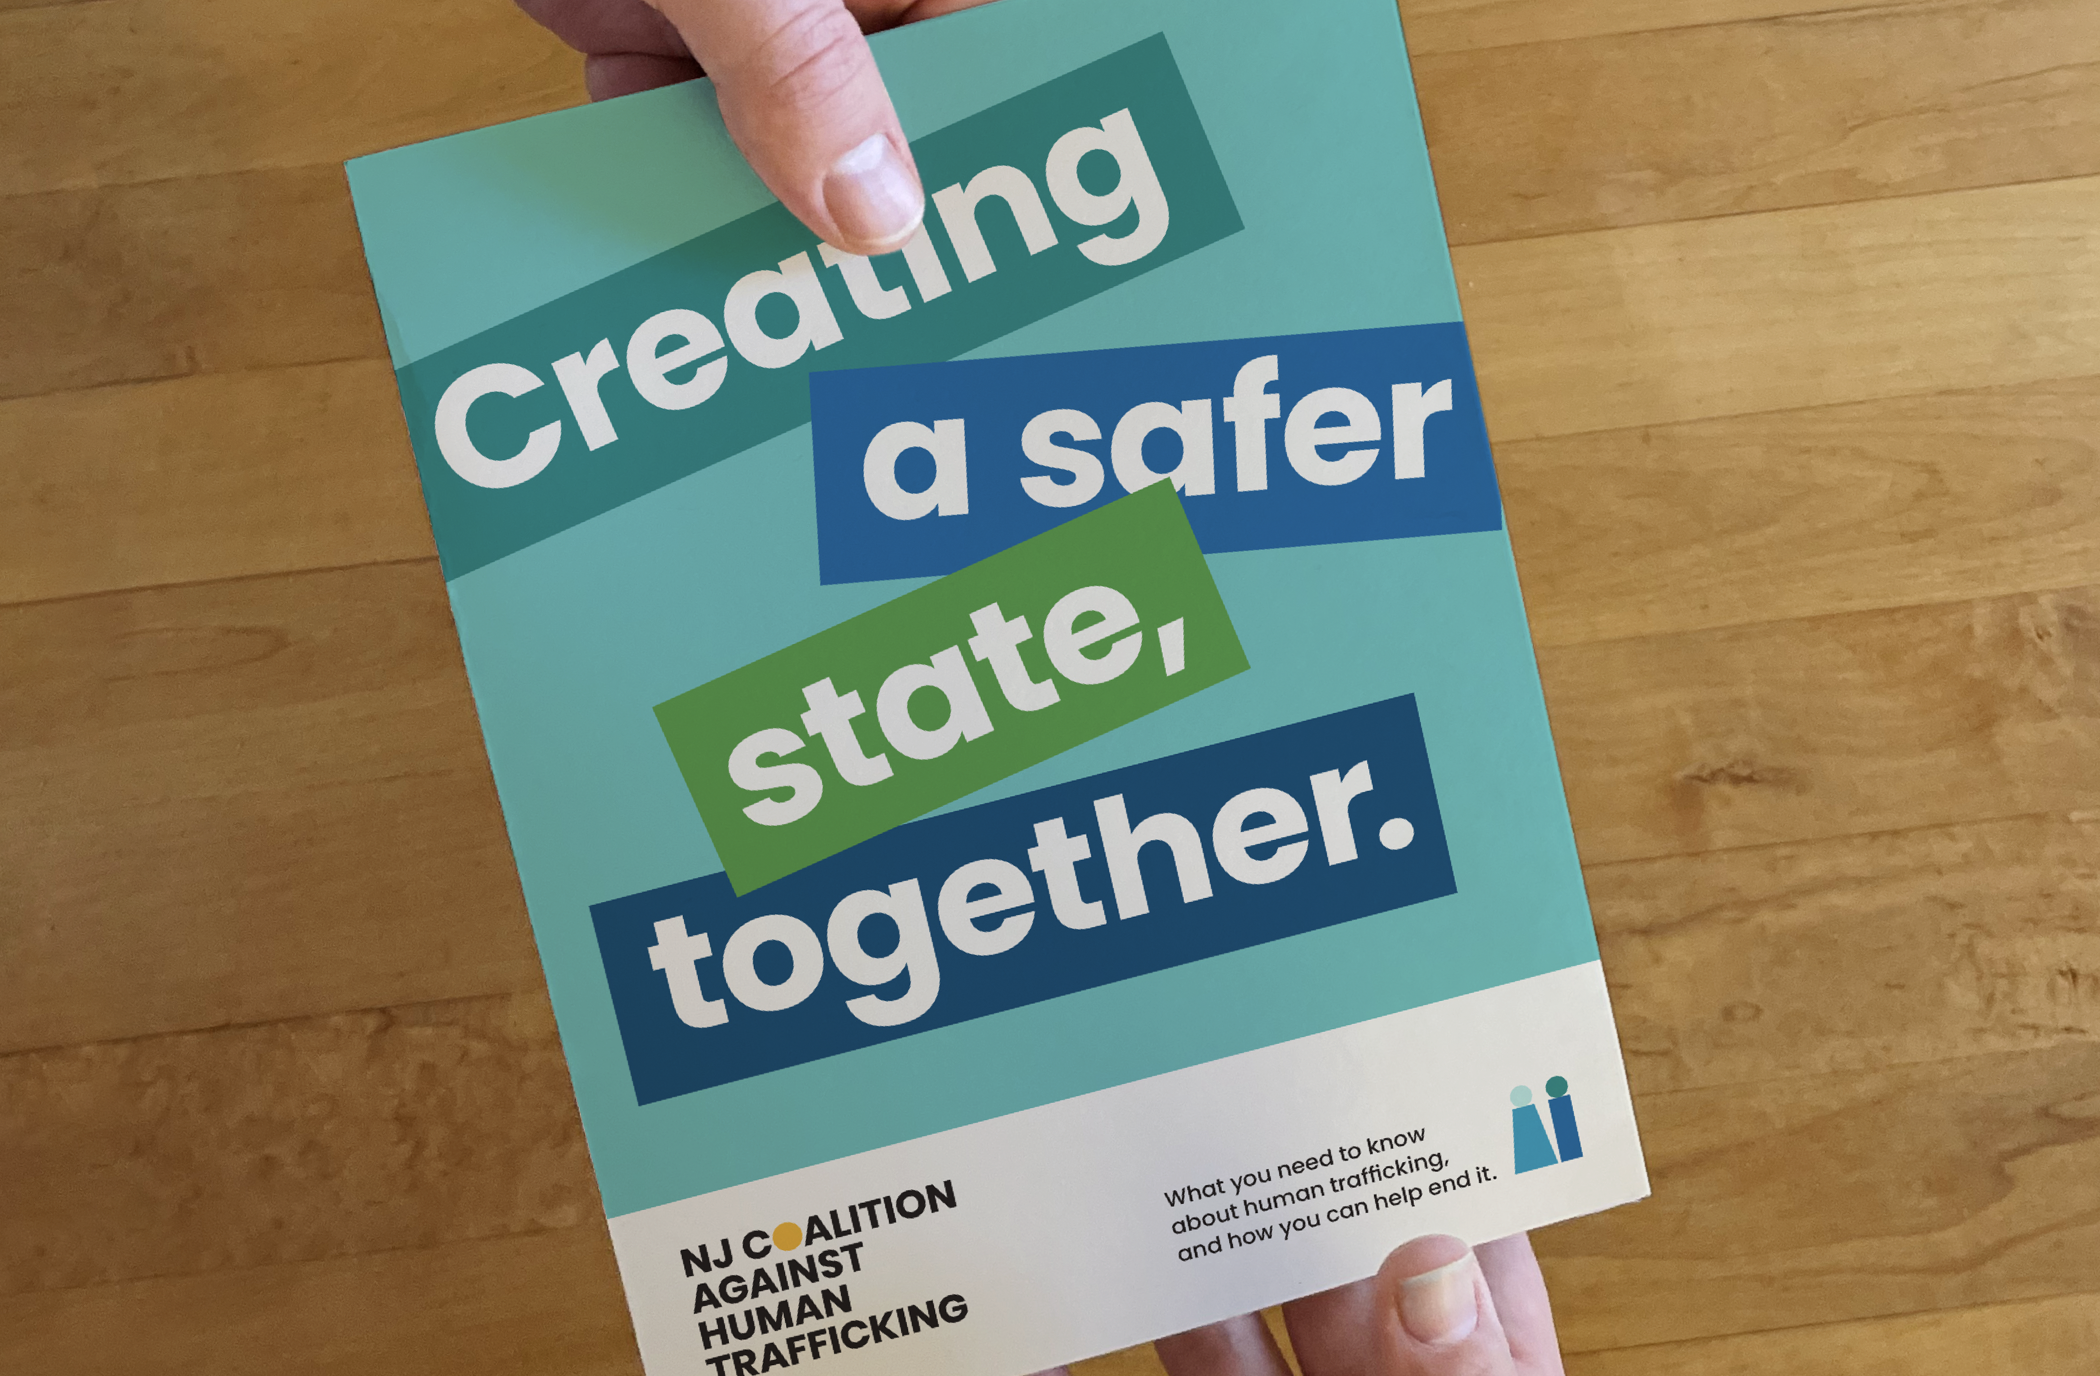 Brochure of key terms, statistics, and facts related to human trafficking—and how community members can get involved.